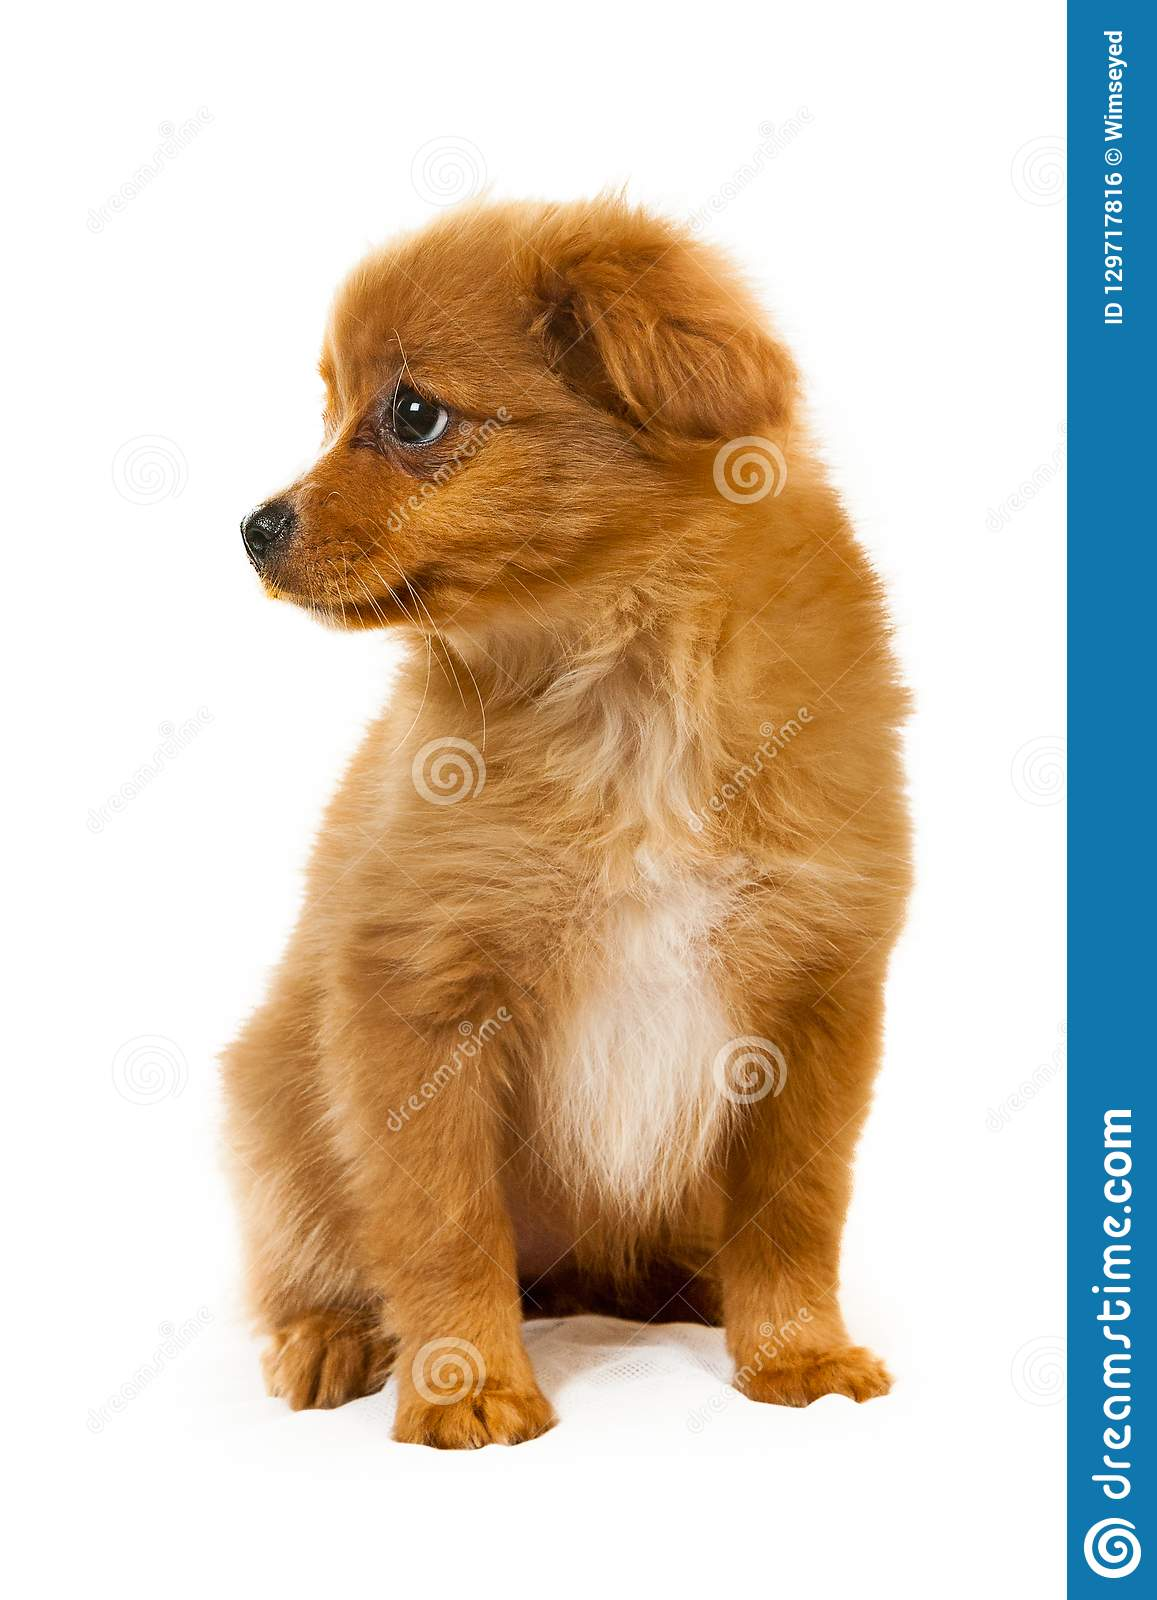 Pomeranian Dog Fluffy Cute Puppy Stock Photo Image Of Brown Purebred 129717816